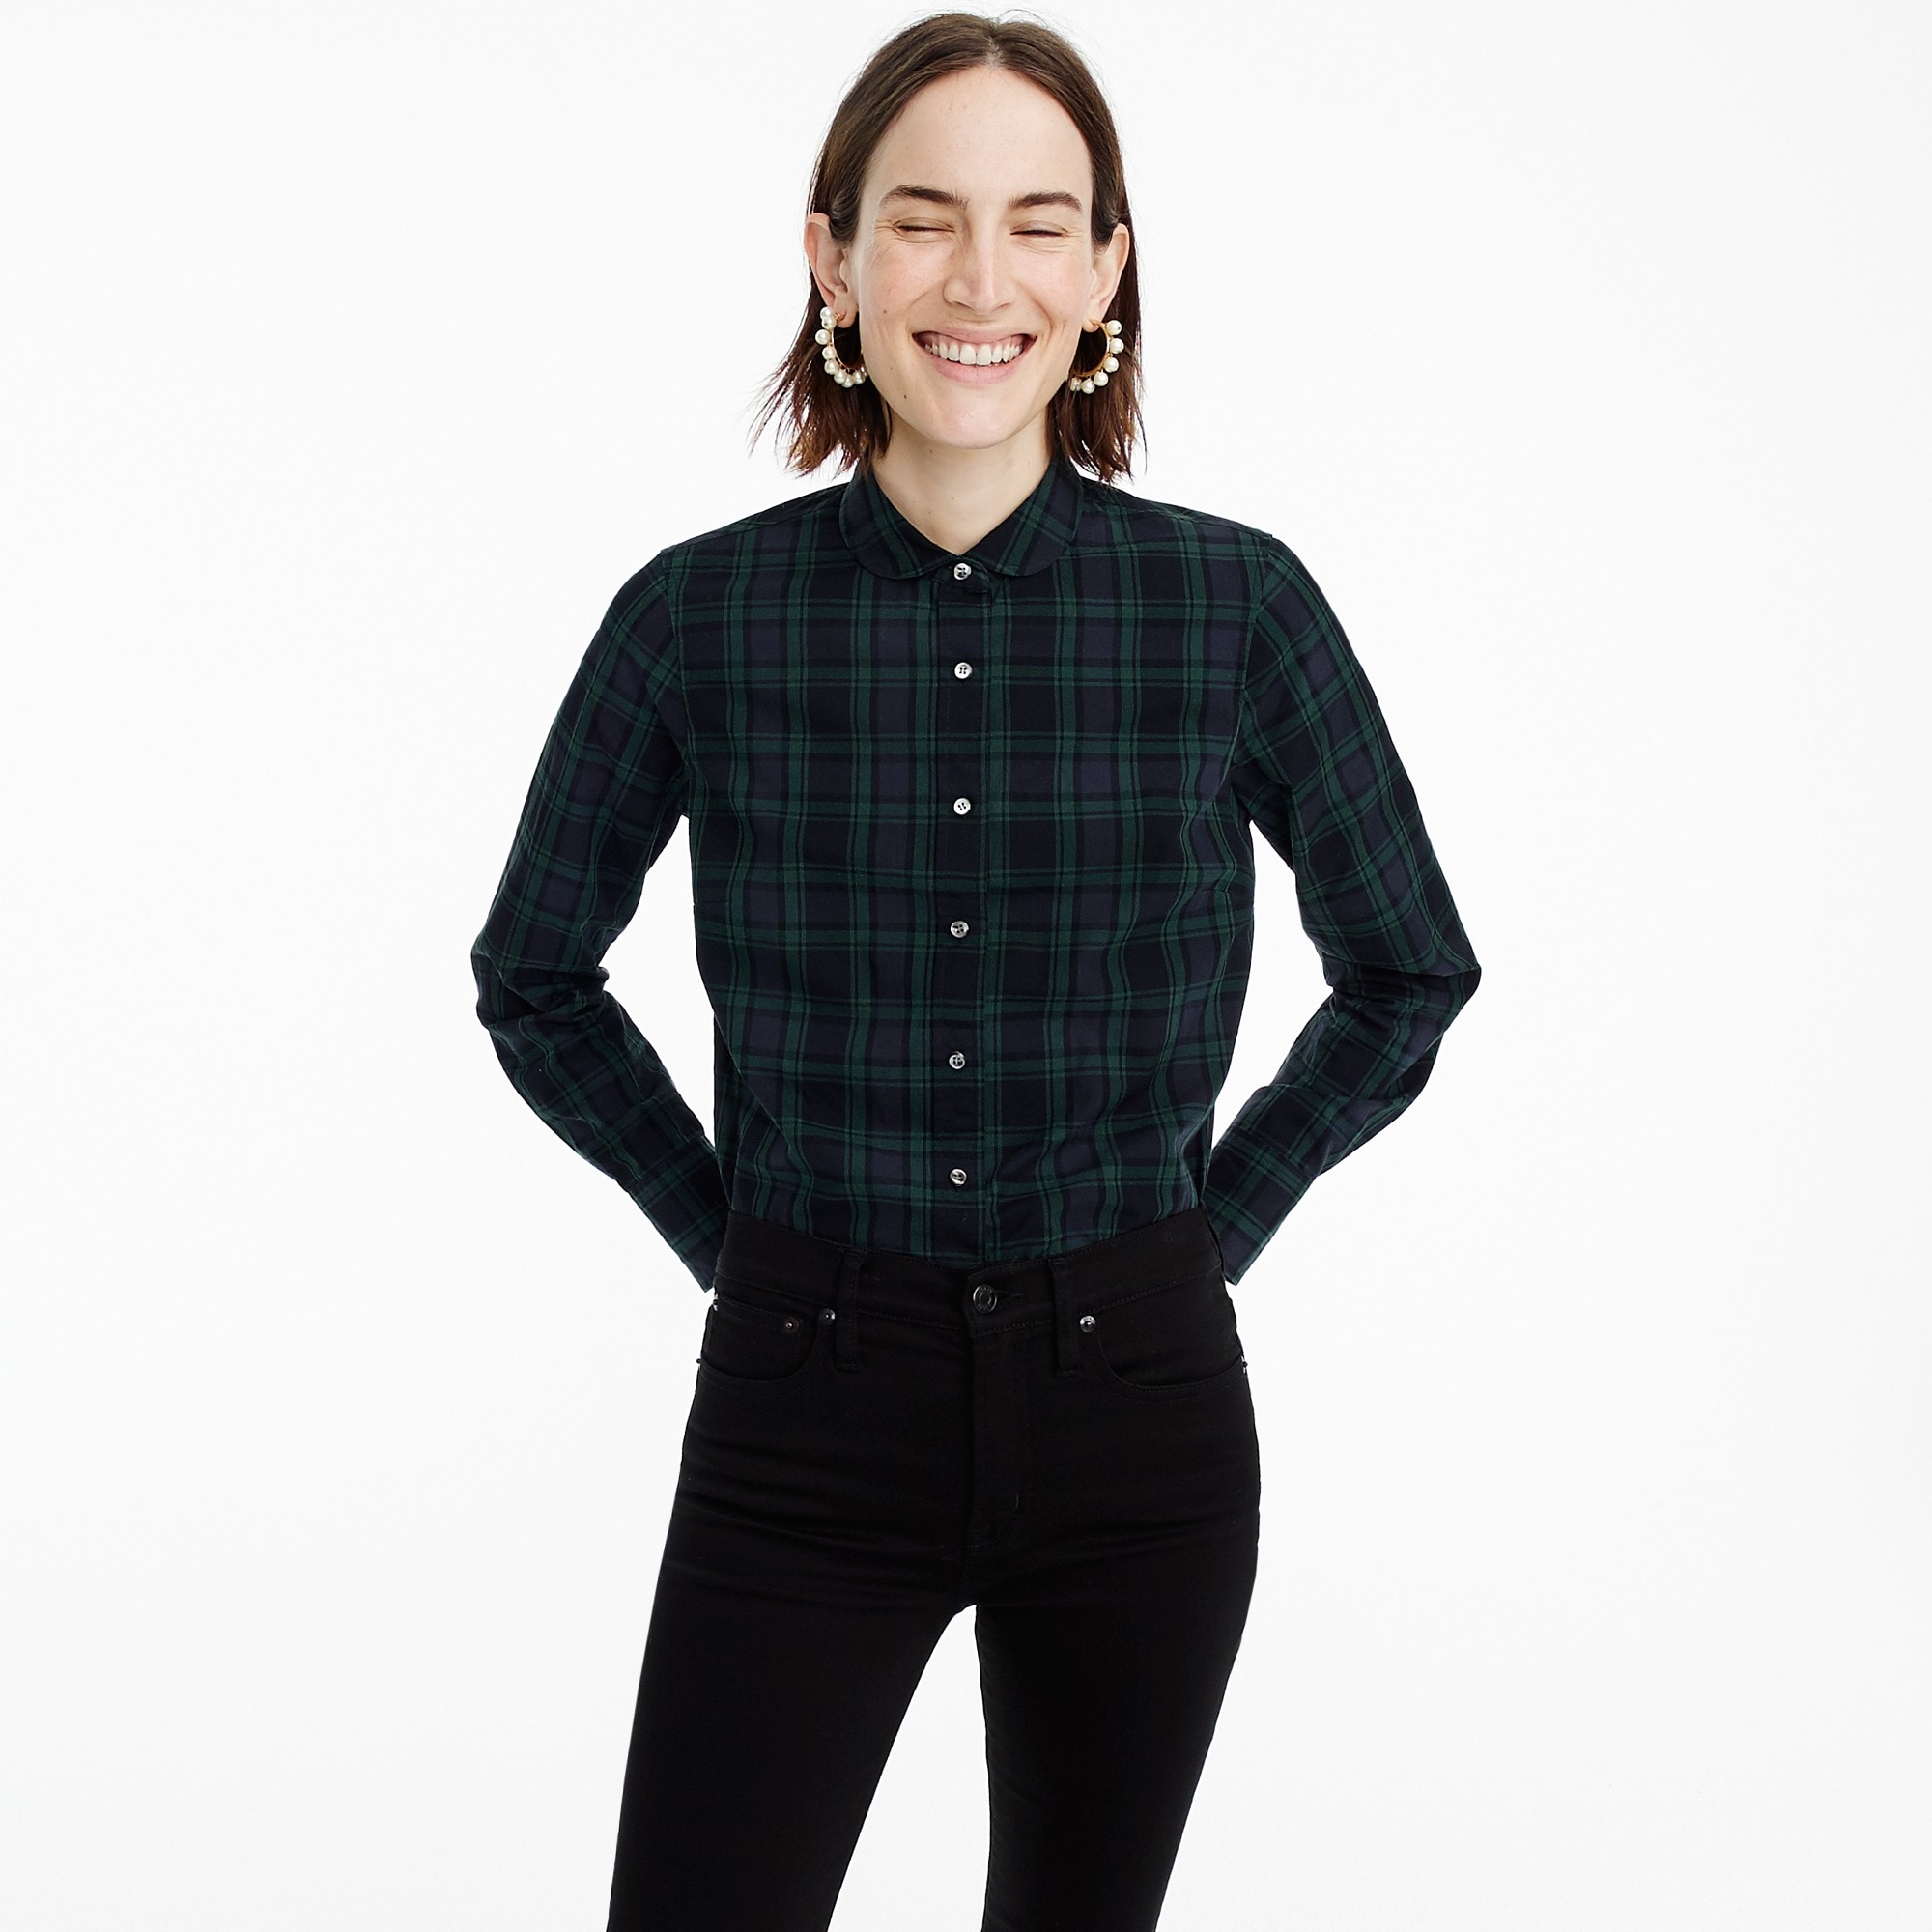 Image 1 for Petite club-collar perfect shirt in Black Watch plaid